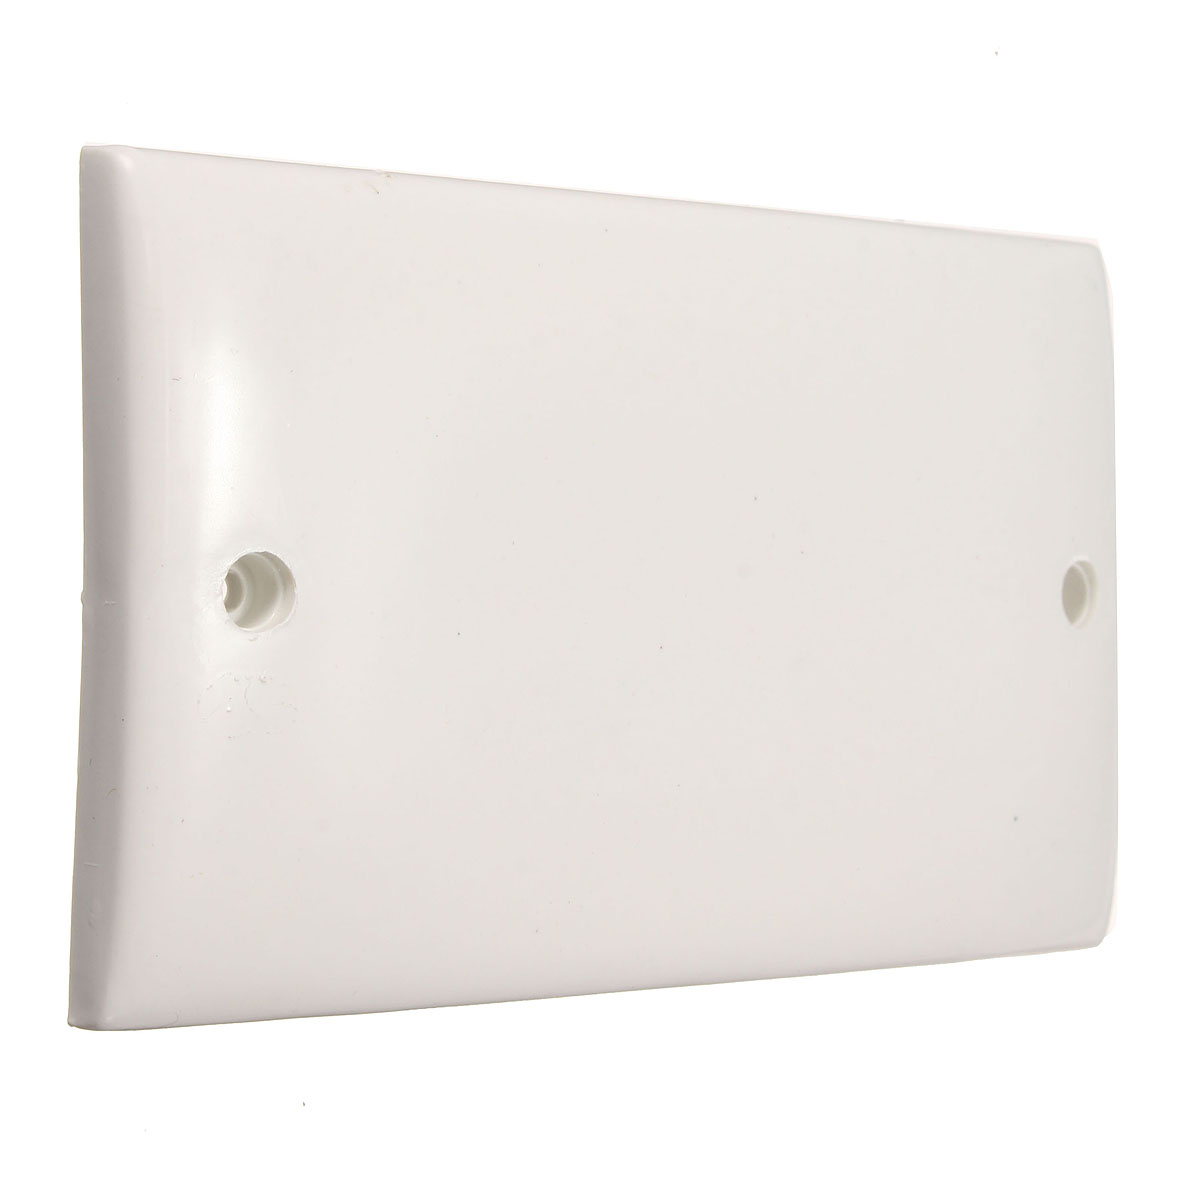 83x58x35mm Plastic Electric Mains Wall Socket Blanking Plate Cover